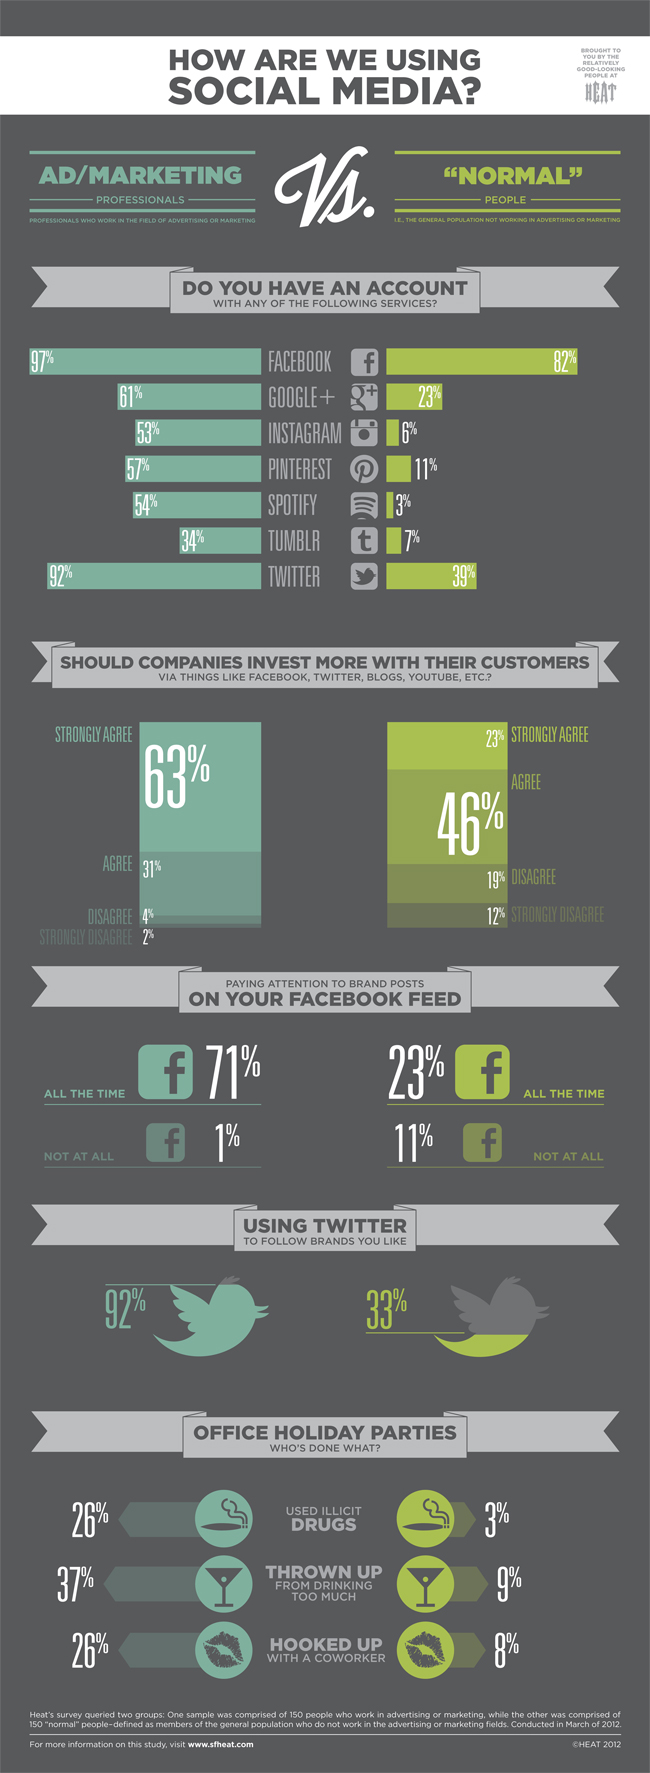 How Advertising Folk Use Social Media Infographic